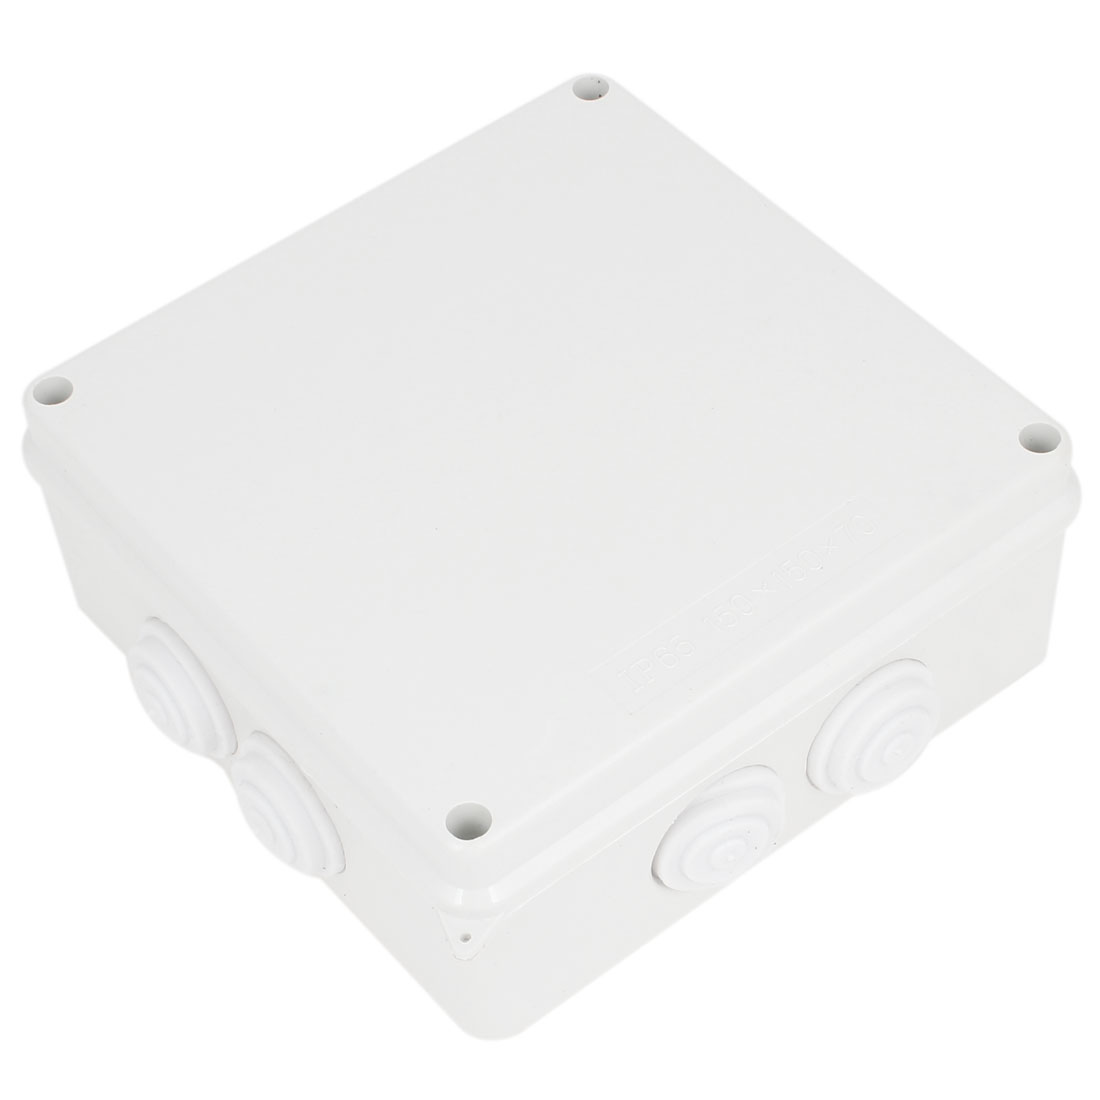 ABS IP65 Waterproof Square Junction Box Plain Press on Lid 150x150x70mm